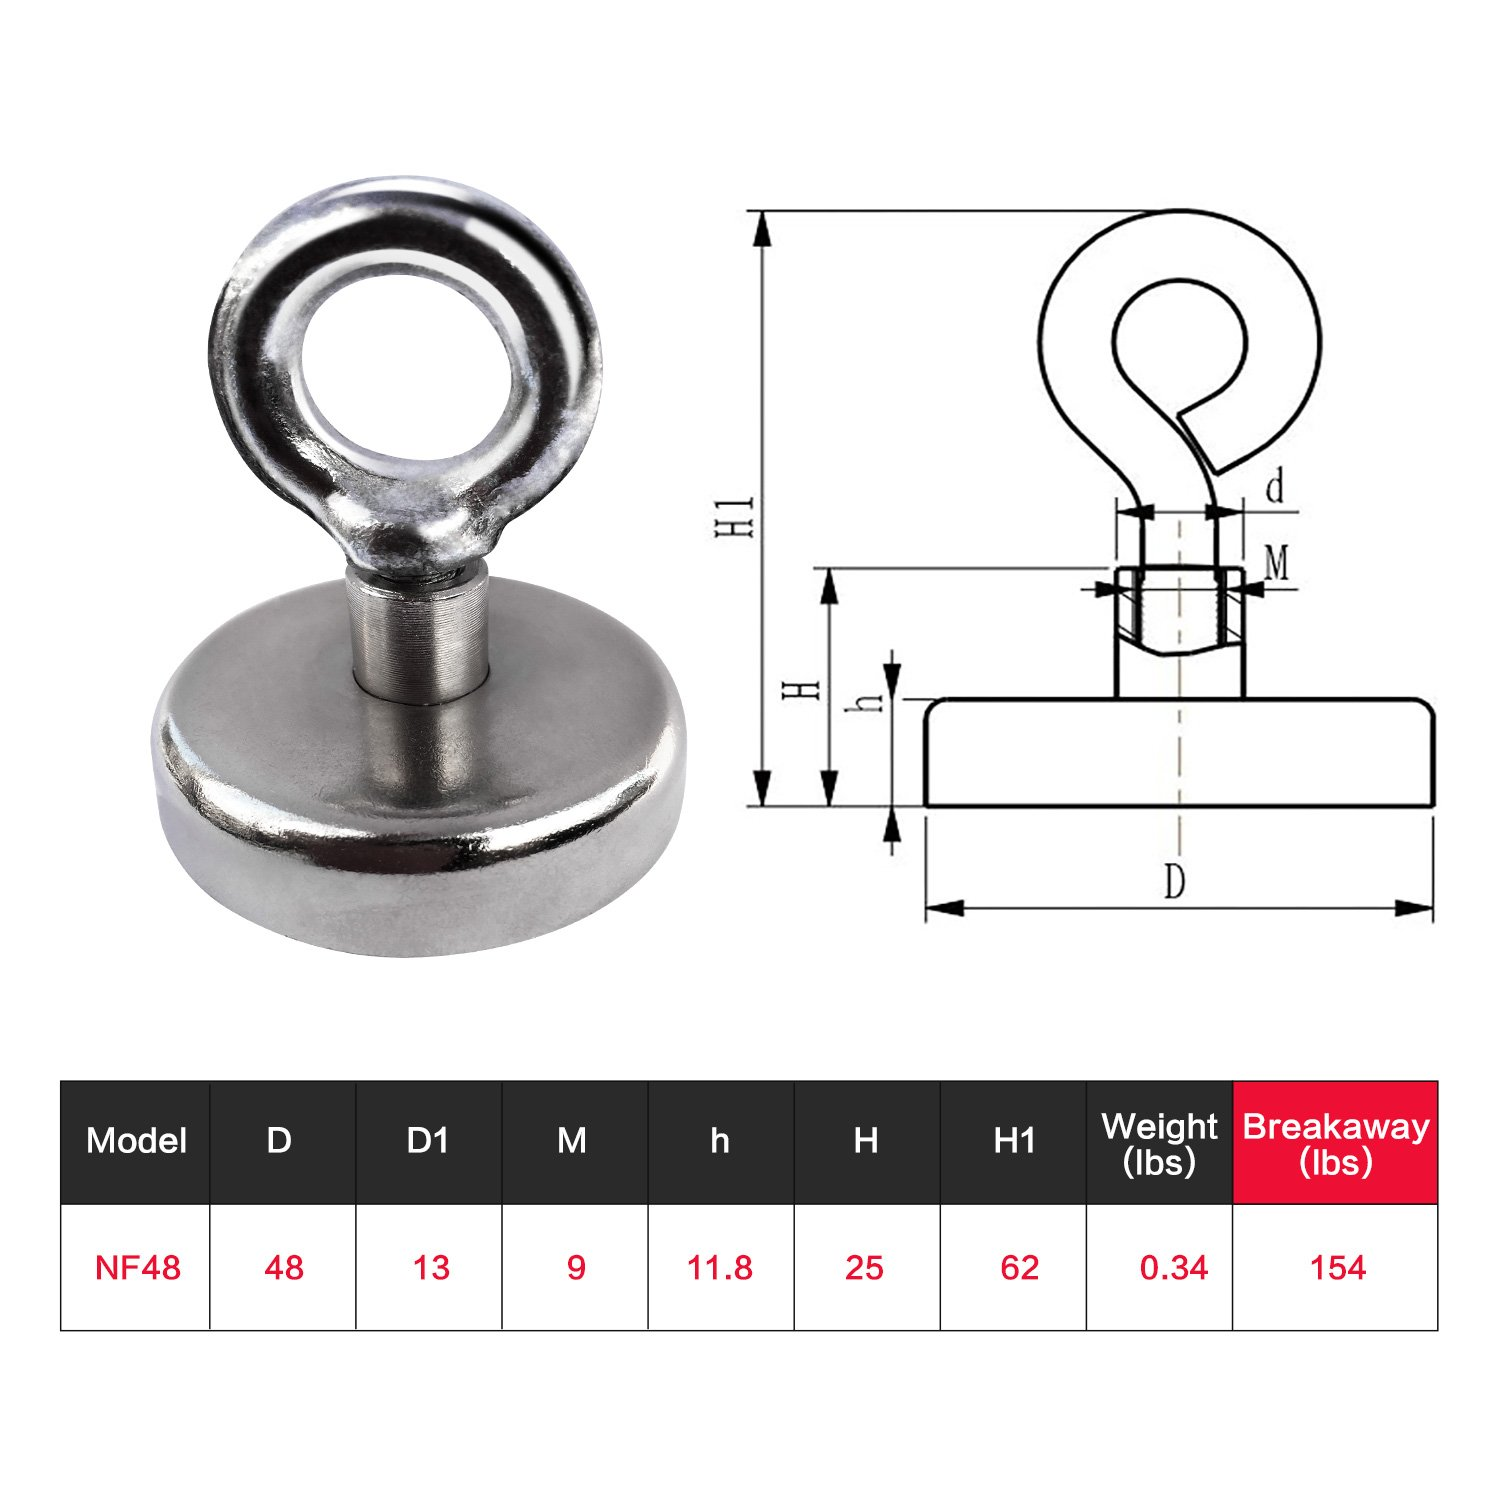 JPGmag Heavy Duty Magnets 154 Lbs/70 KG,Powerful Bonded Neodymium Rare Earth Fishing Underwater Magnets for Pulling Force Coated with Screws,Eyebolt,Diameter 1.89Inch(48mm) by JPGMAG (Image #2)